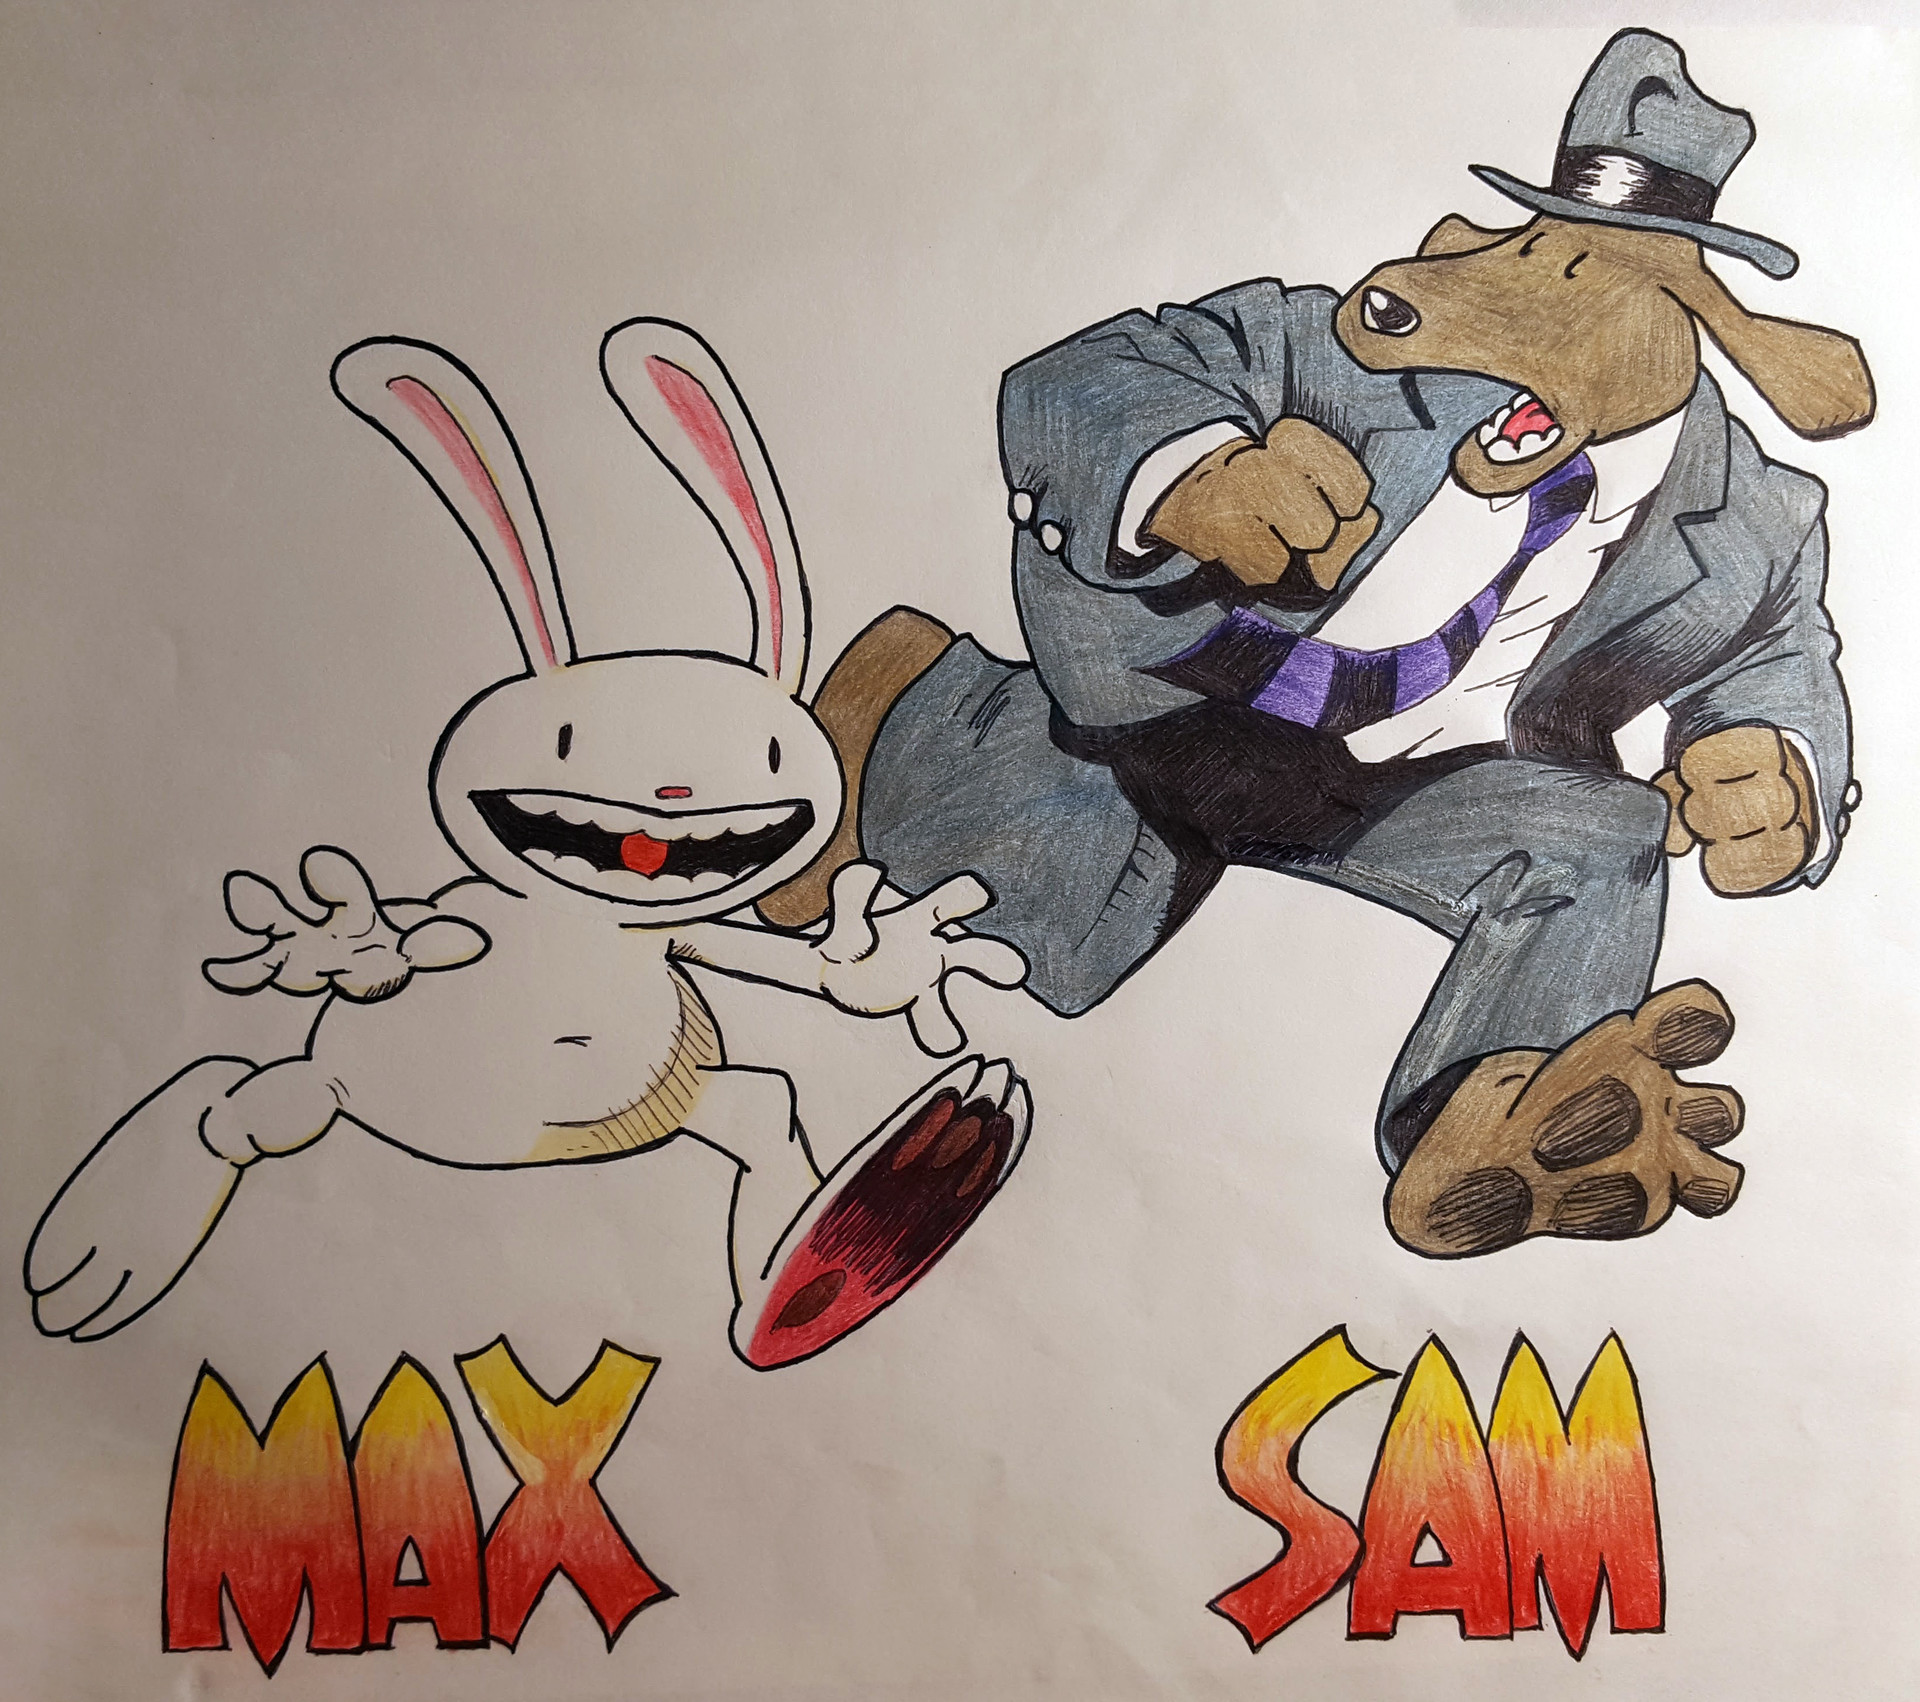 Benni amato sam and max